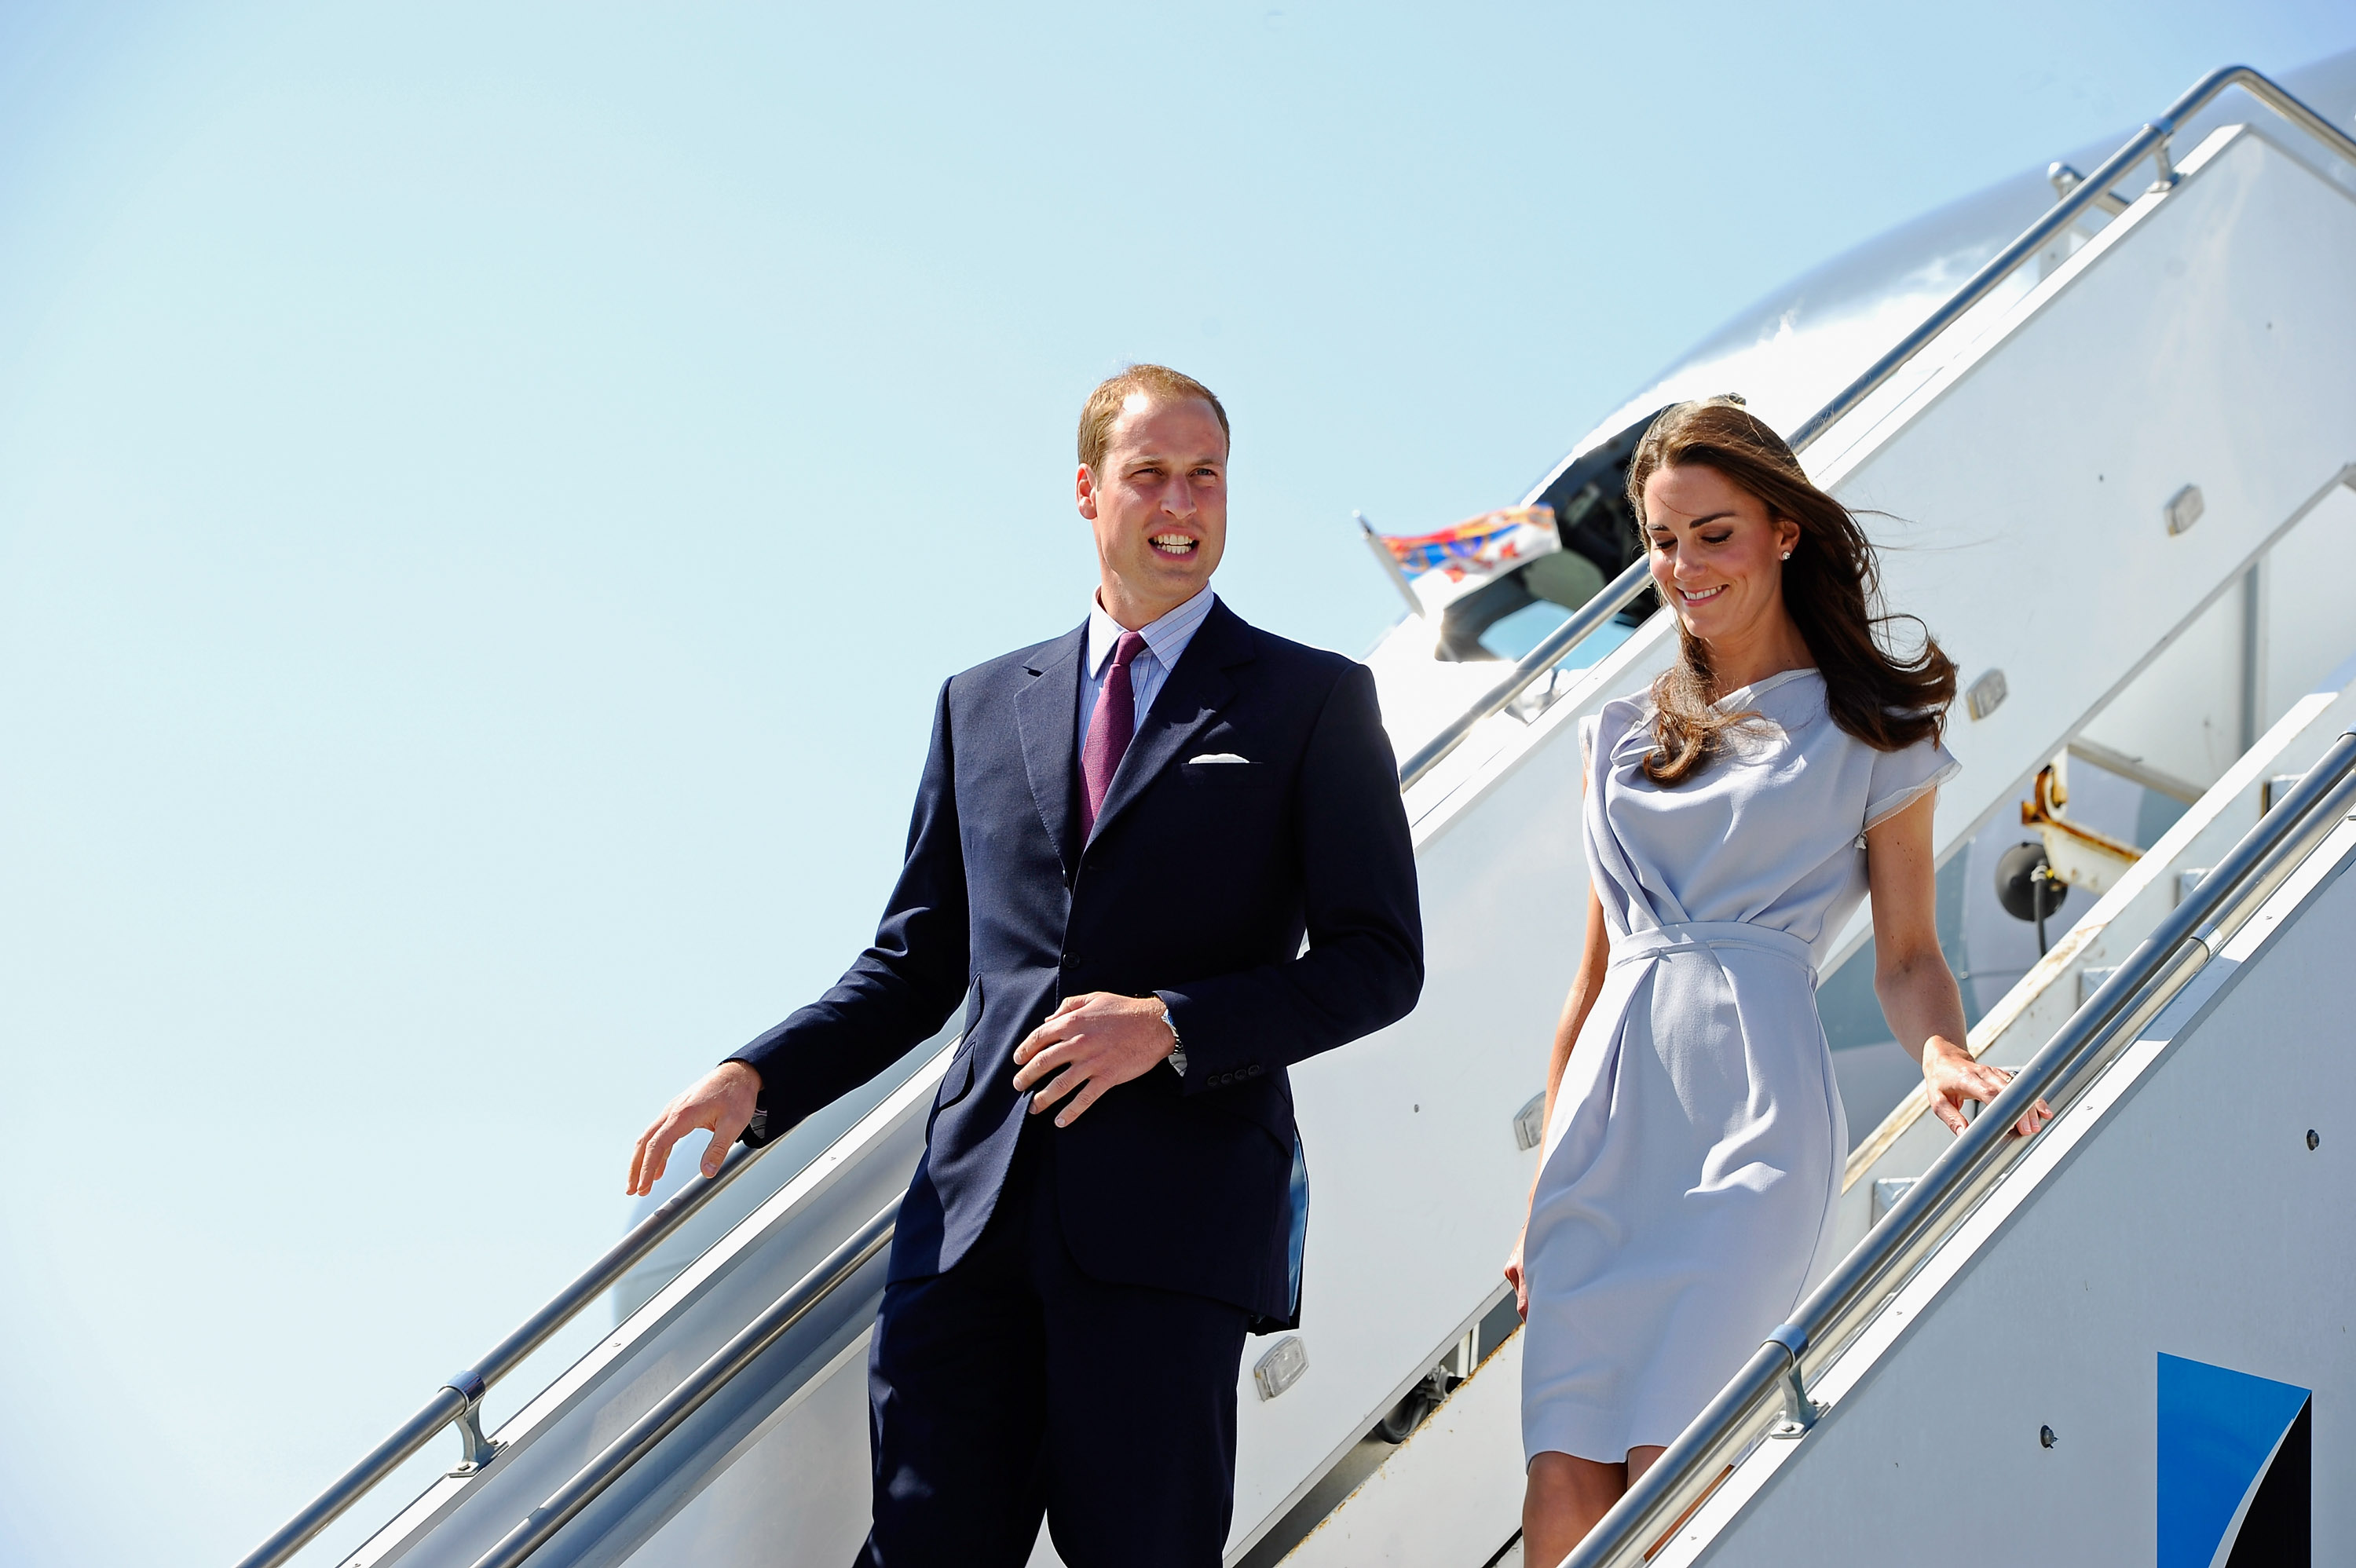 What Kate Middleton should wear in New York